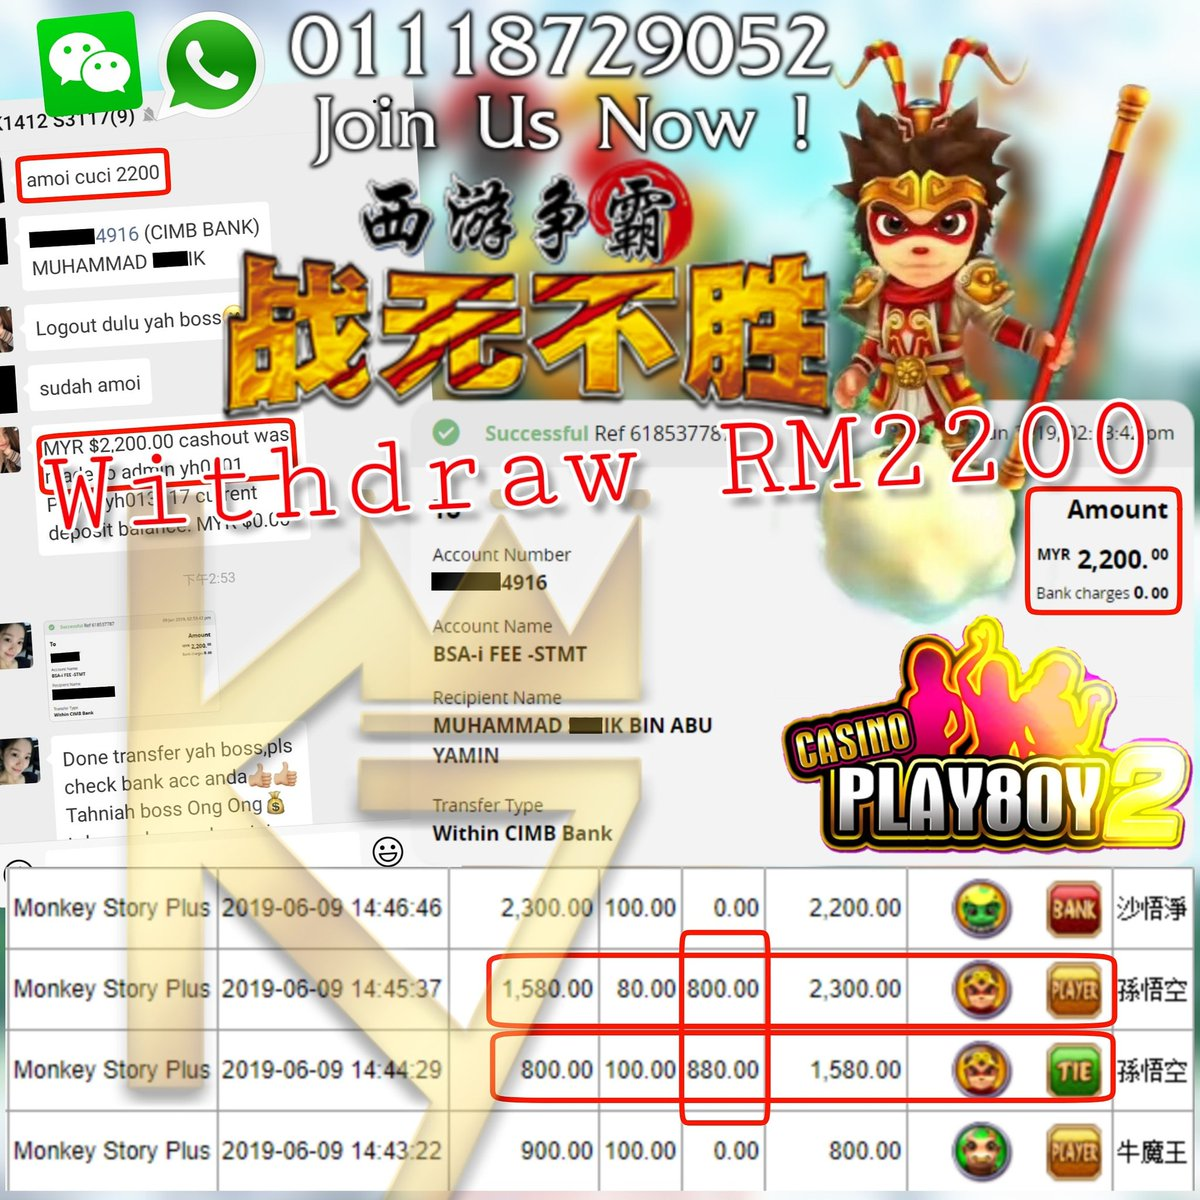 Playboy2💝💝 Monkey story plus Get Withdraw RM2200 👏👏 Join us now